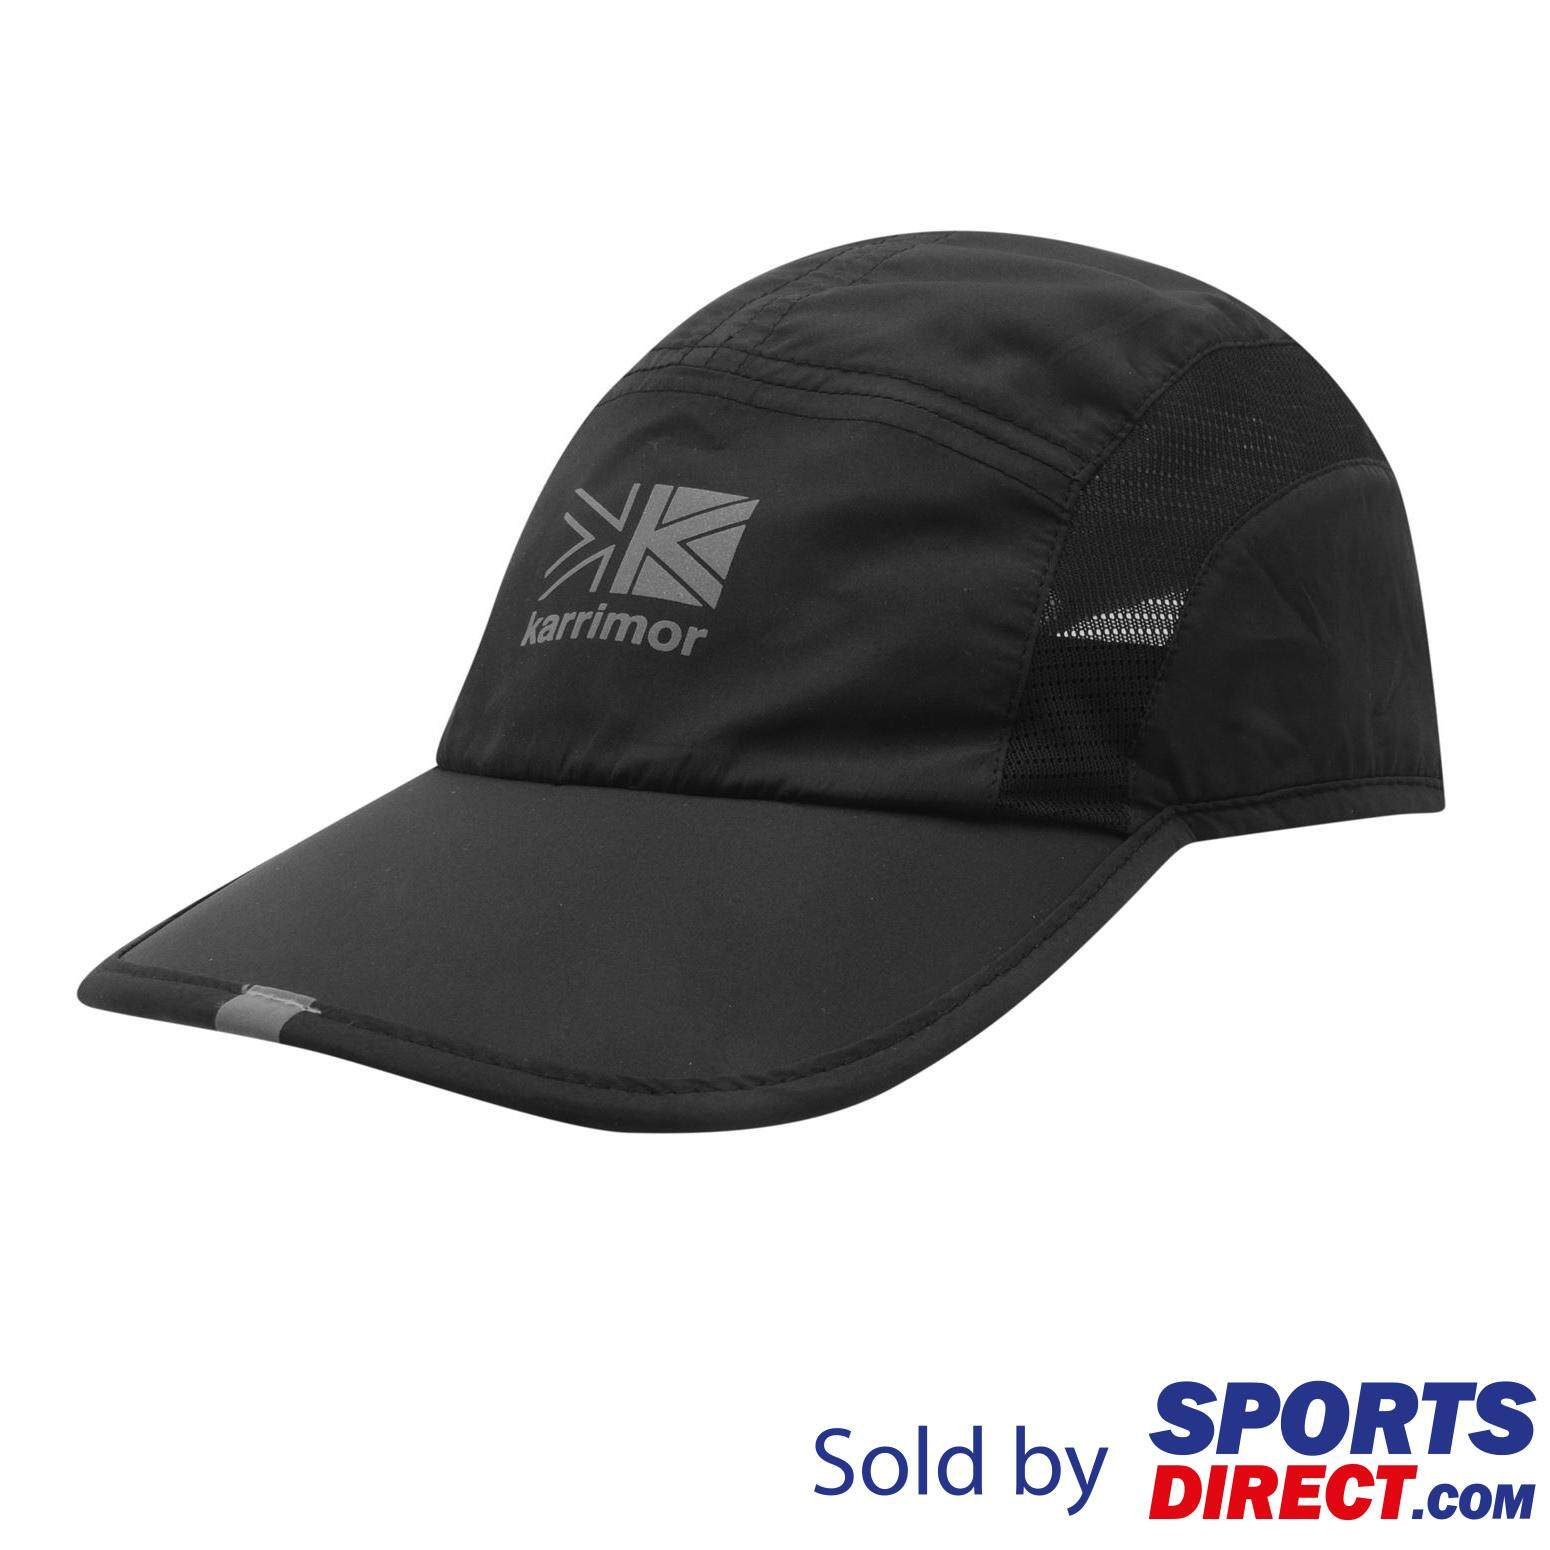 Caps   Hats - Buy Caps   Hats at Best Price in Malaysia  2aac27f690